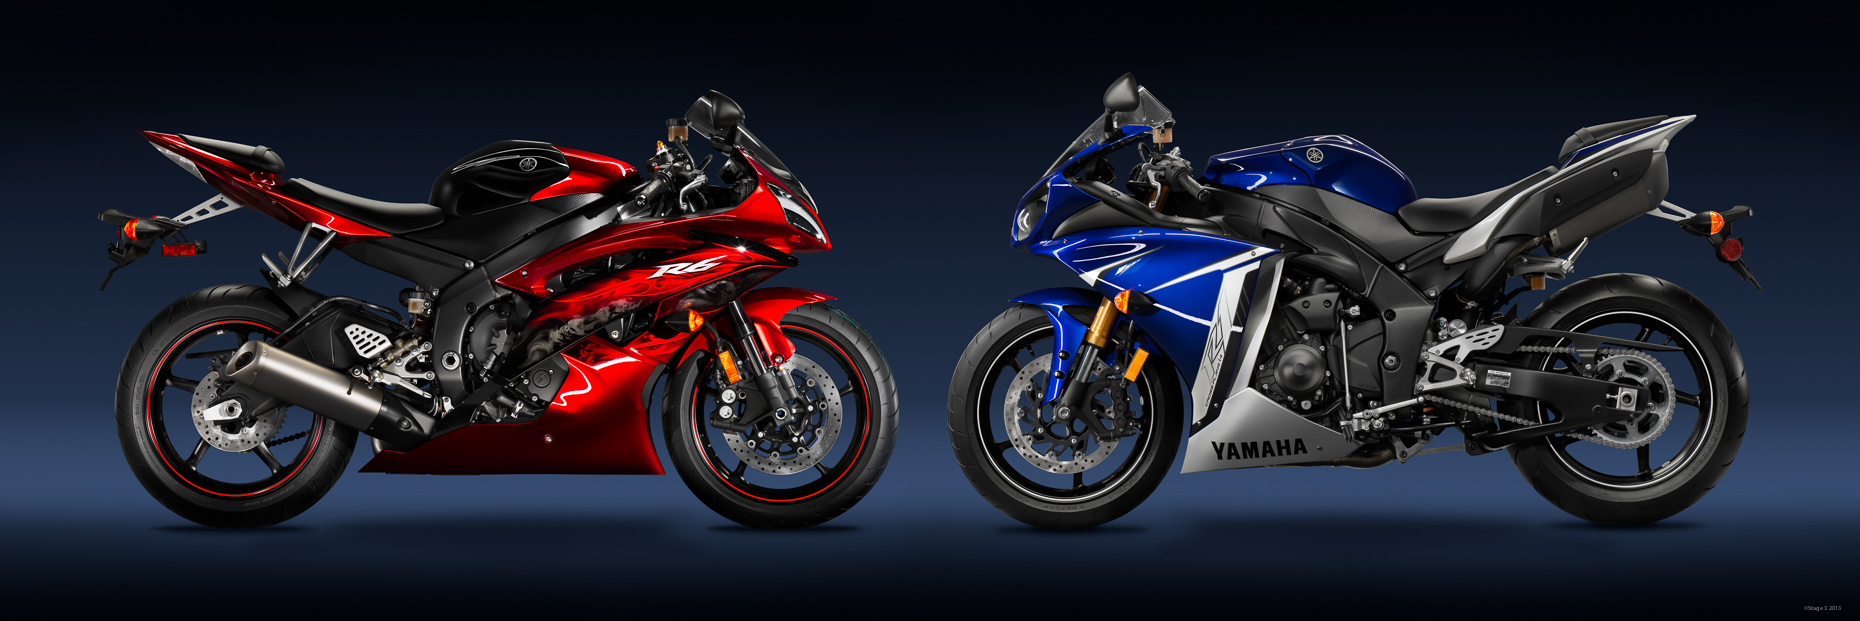 Stage3_Retouching_Yamaha R6 R1 Red_and blue front to front-DUP.jpg